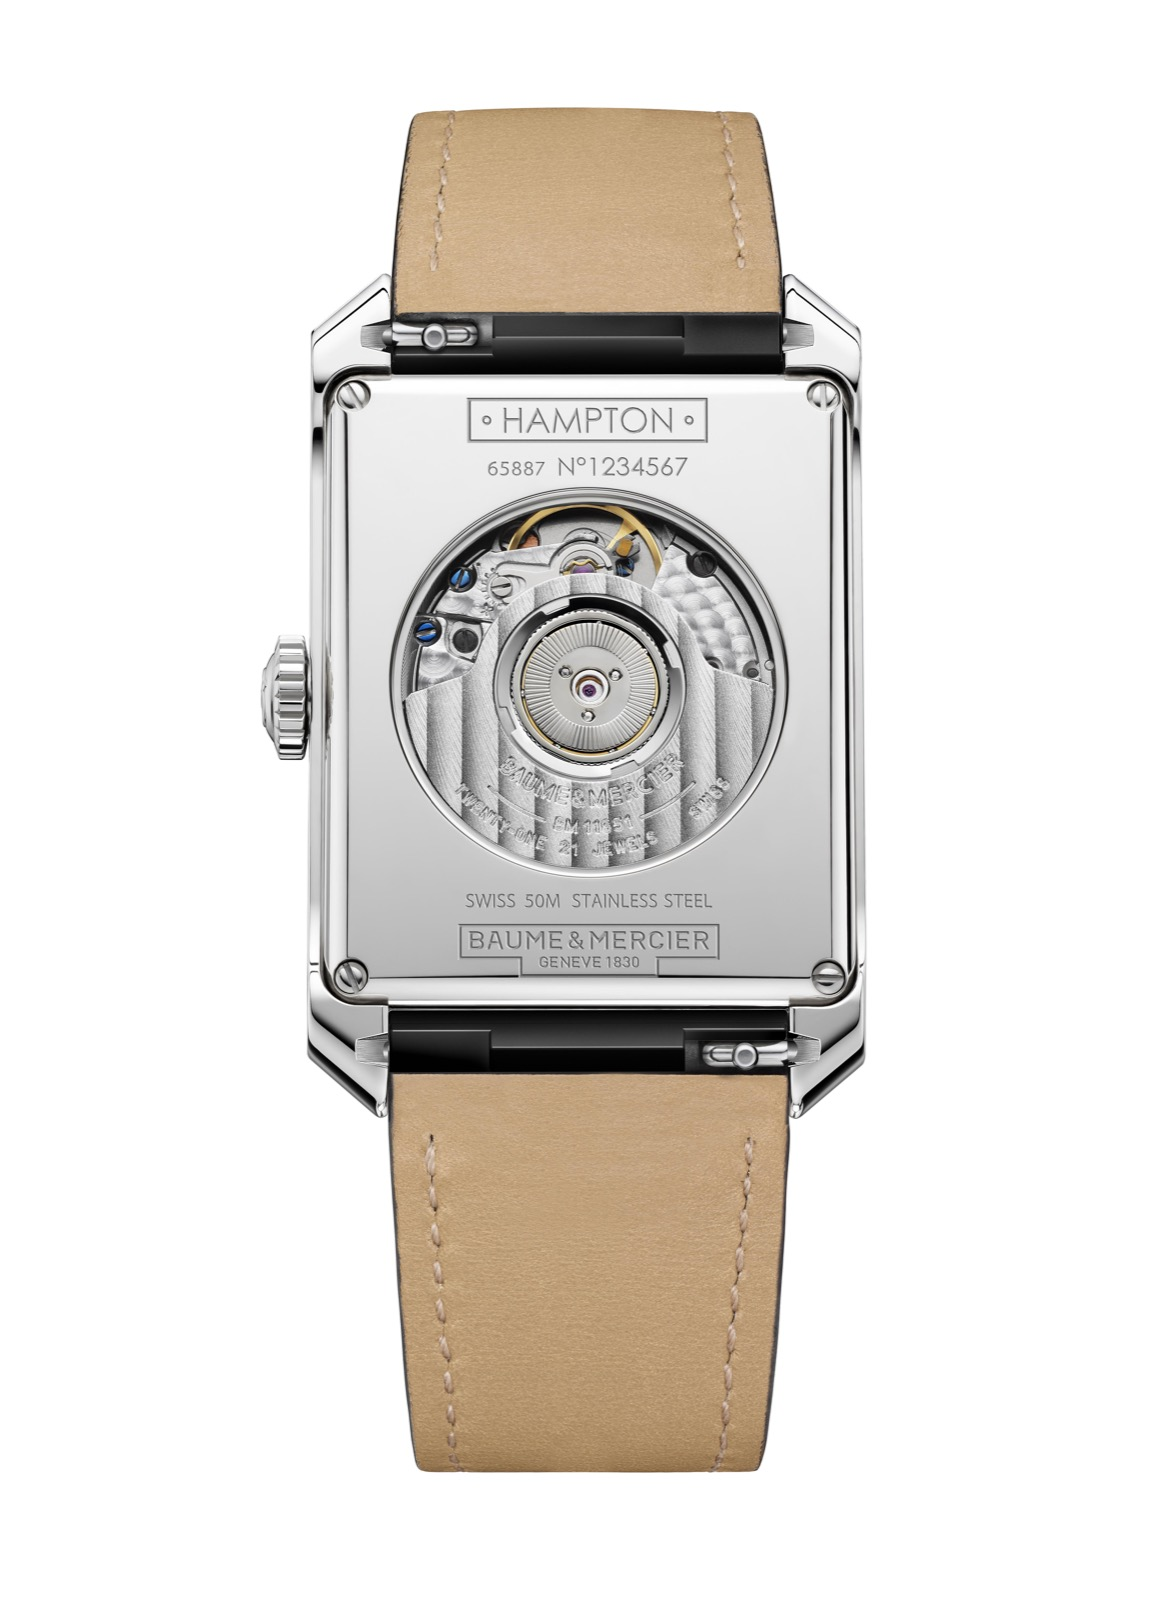 Hampton Automatic Big Date : Dual Time 10523 - Cal. Soprod TT